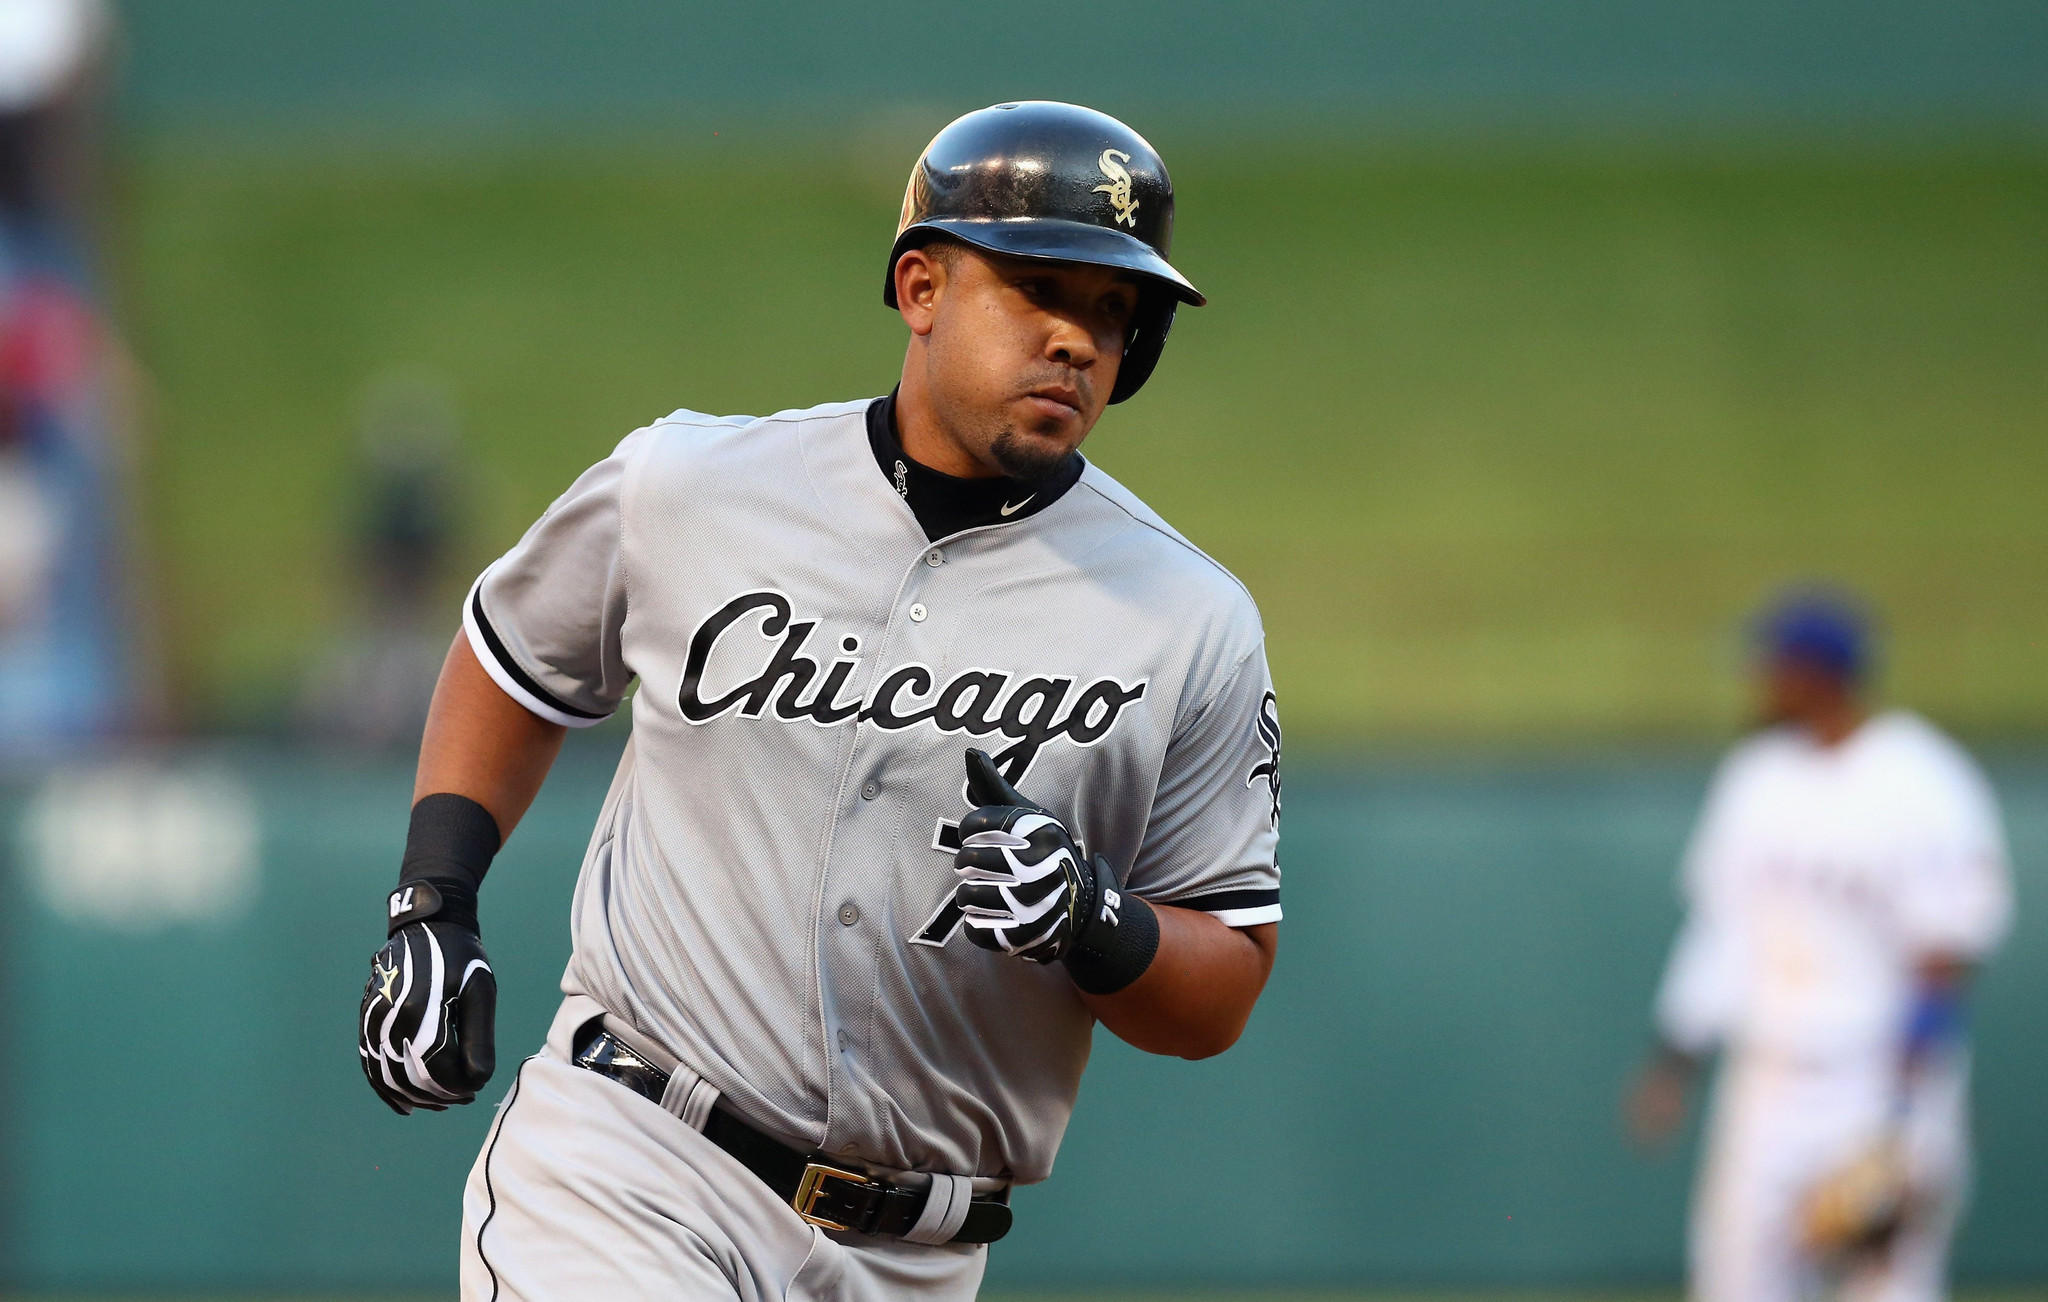 Forget bruise and bruising, Jose Abreu and Chris Sale huge ...